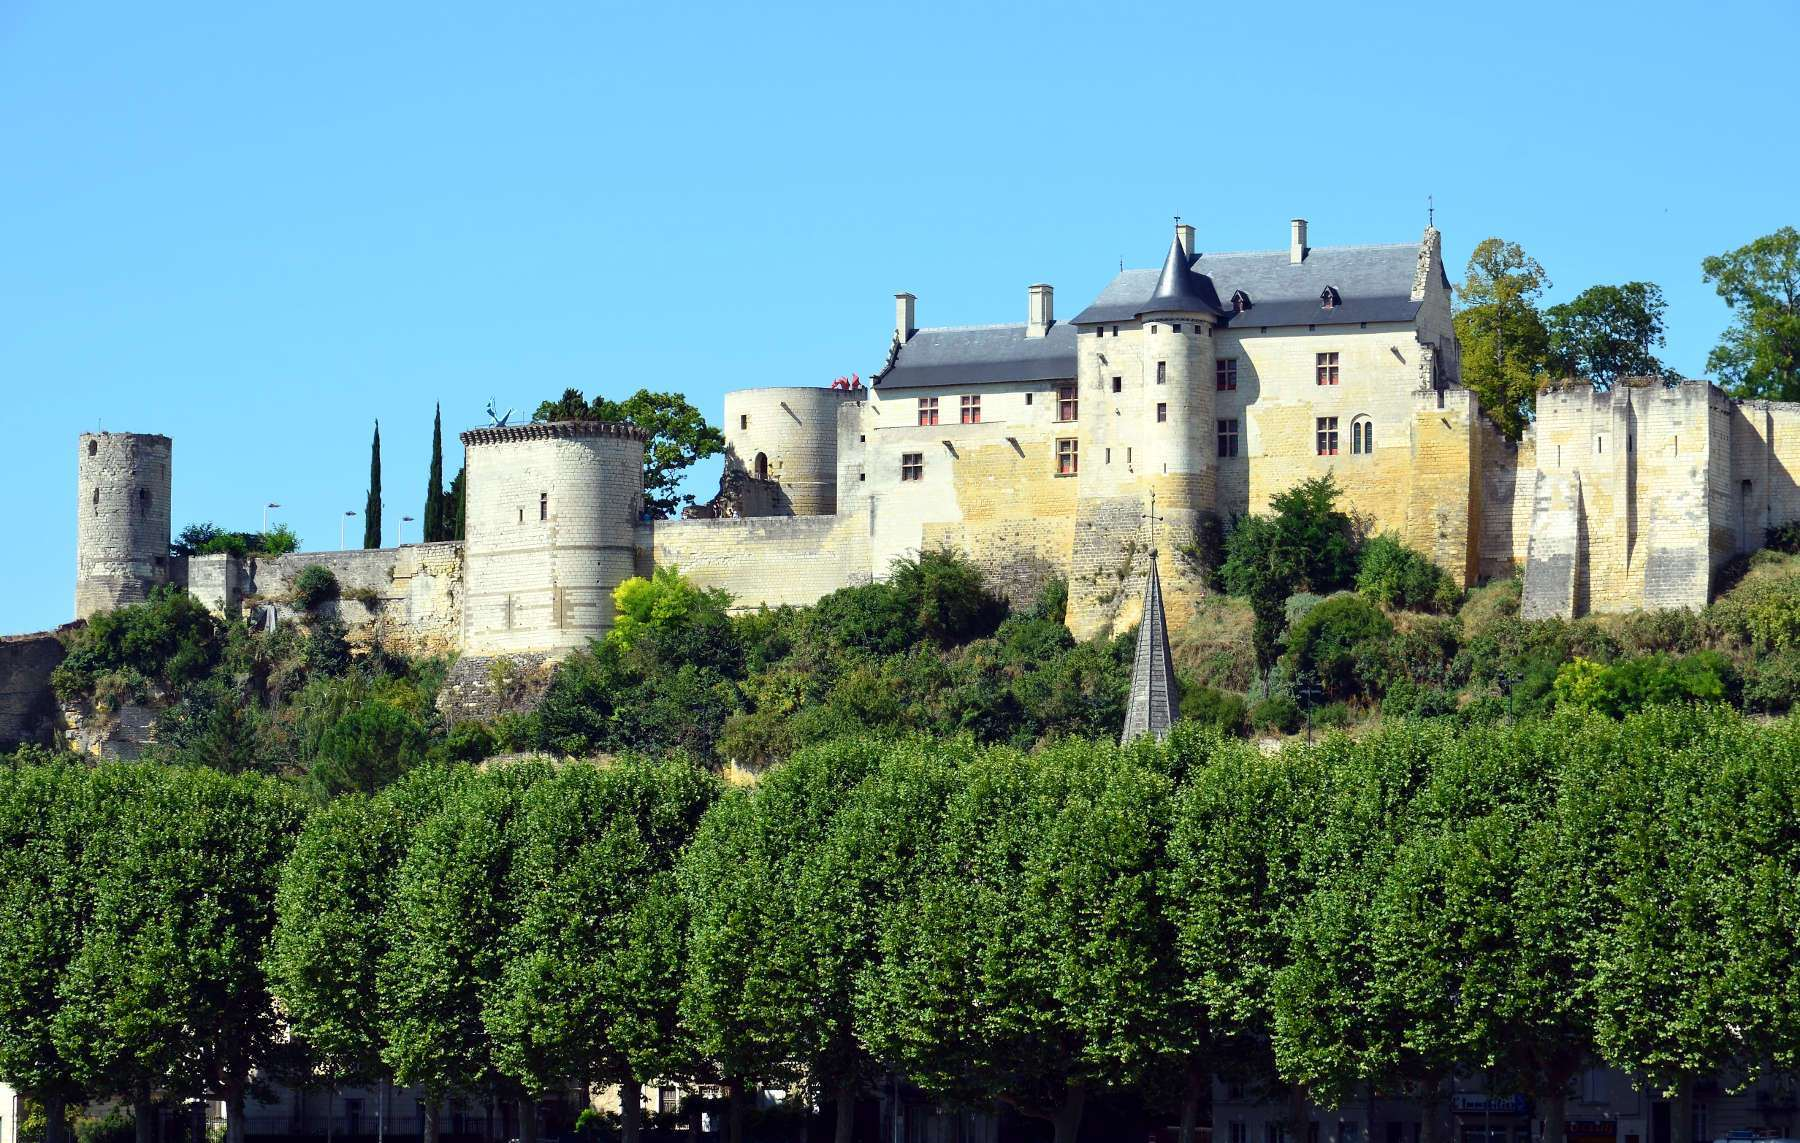 Château_de_Chinon_castle_France_Shinon